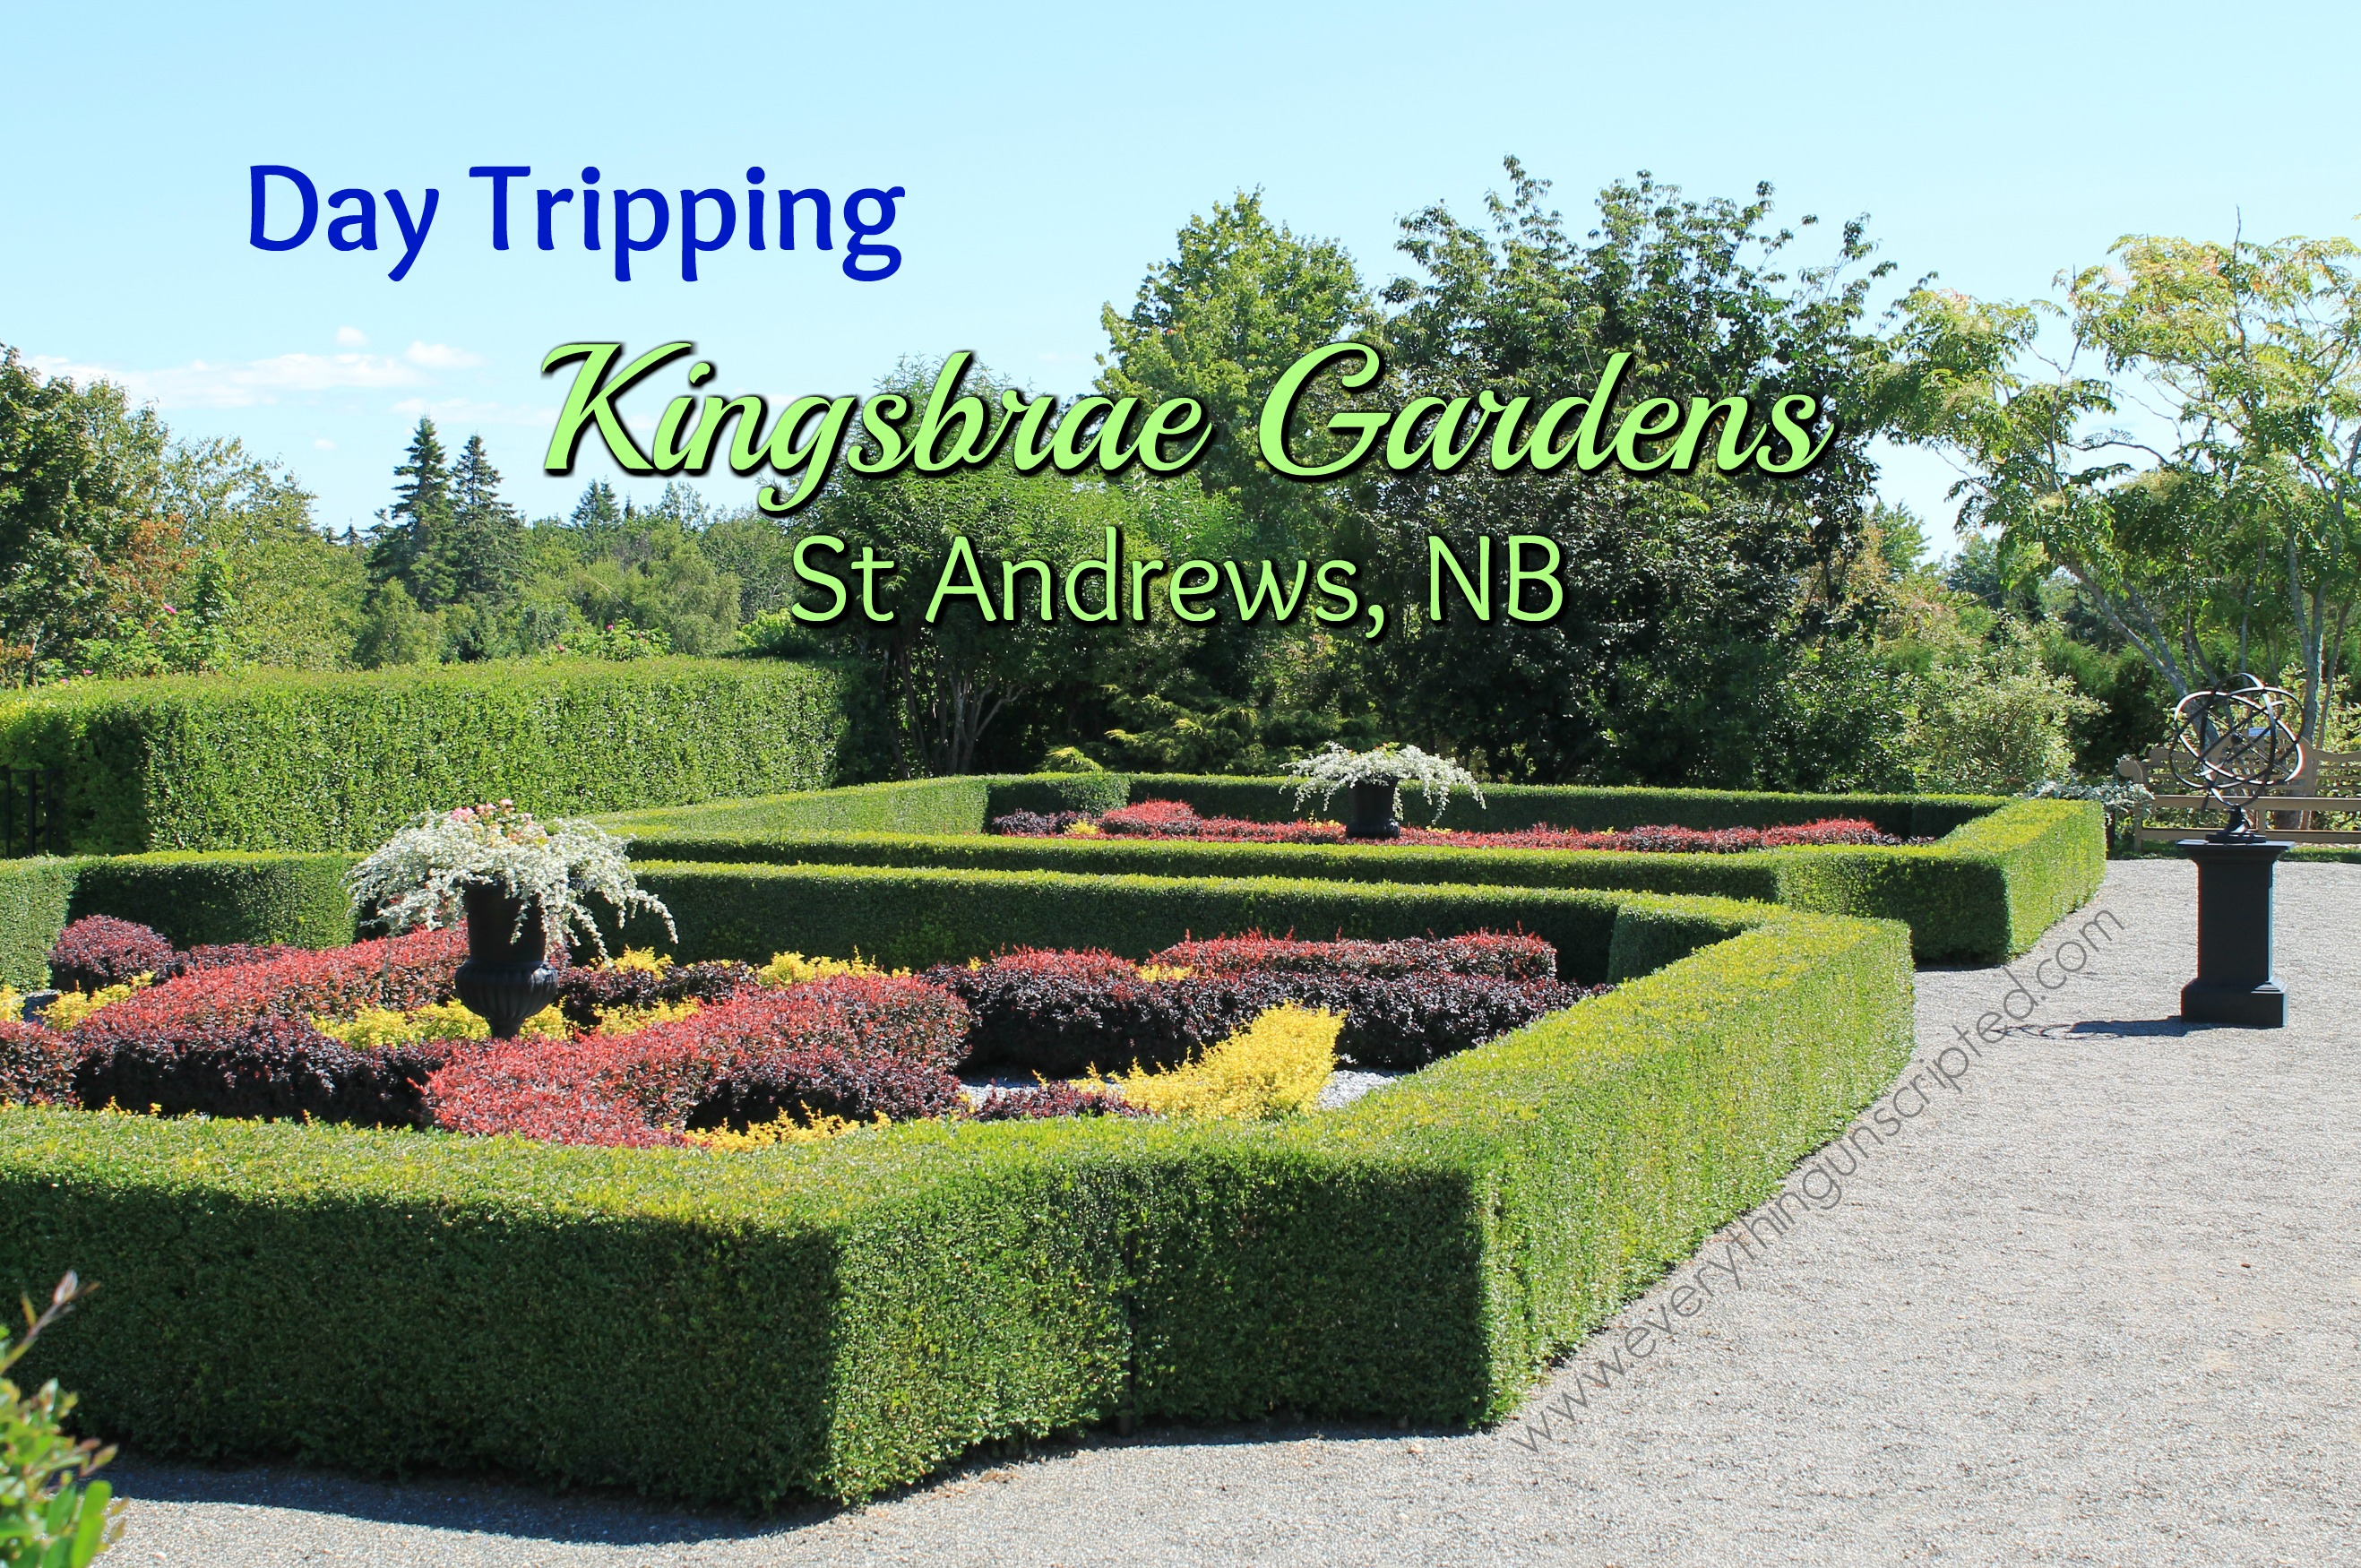 Day Tripping – Kingsbrae Gardens in St Andrews, NB